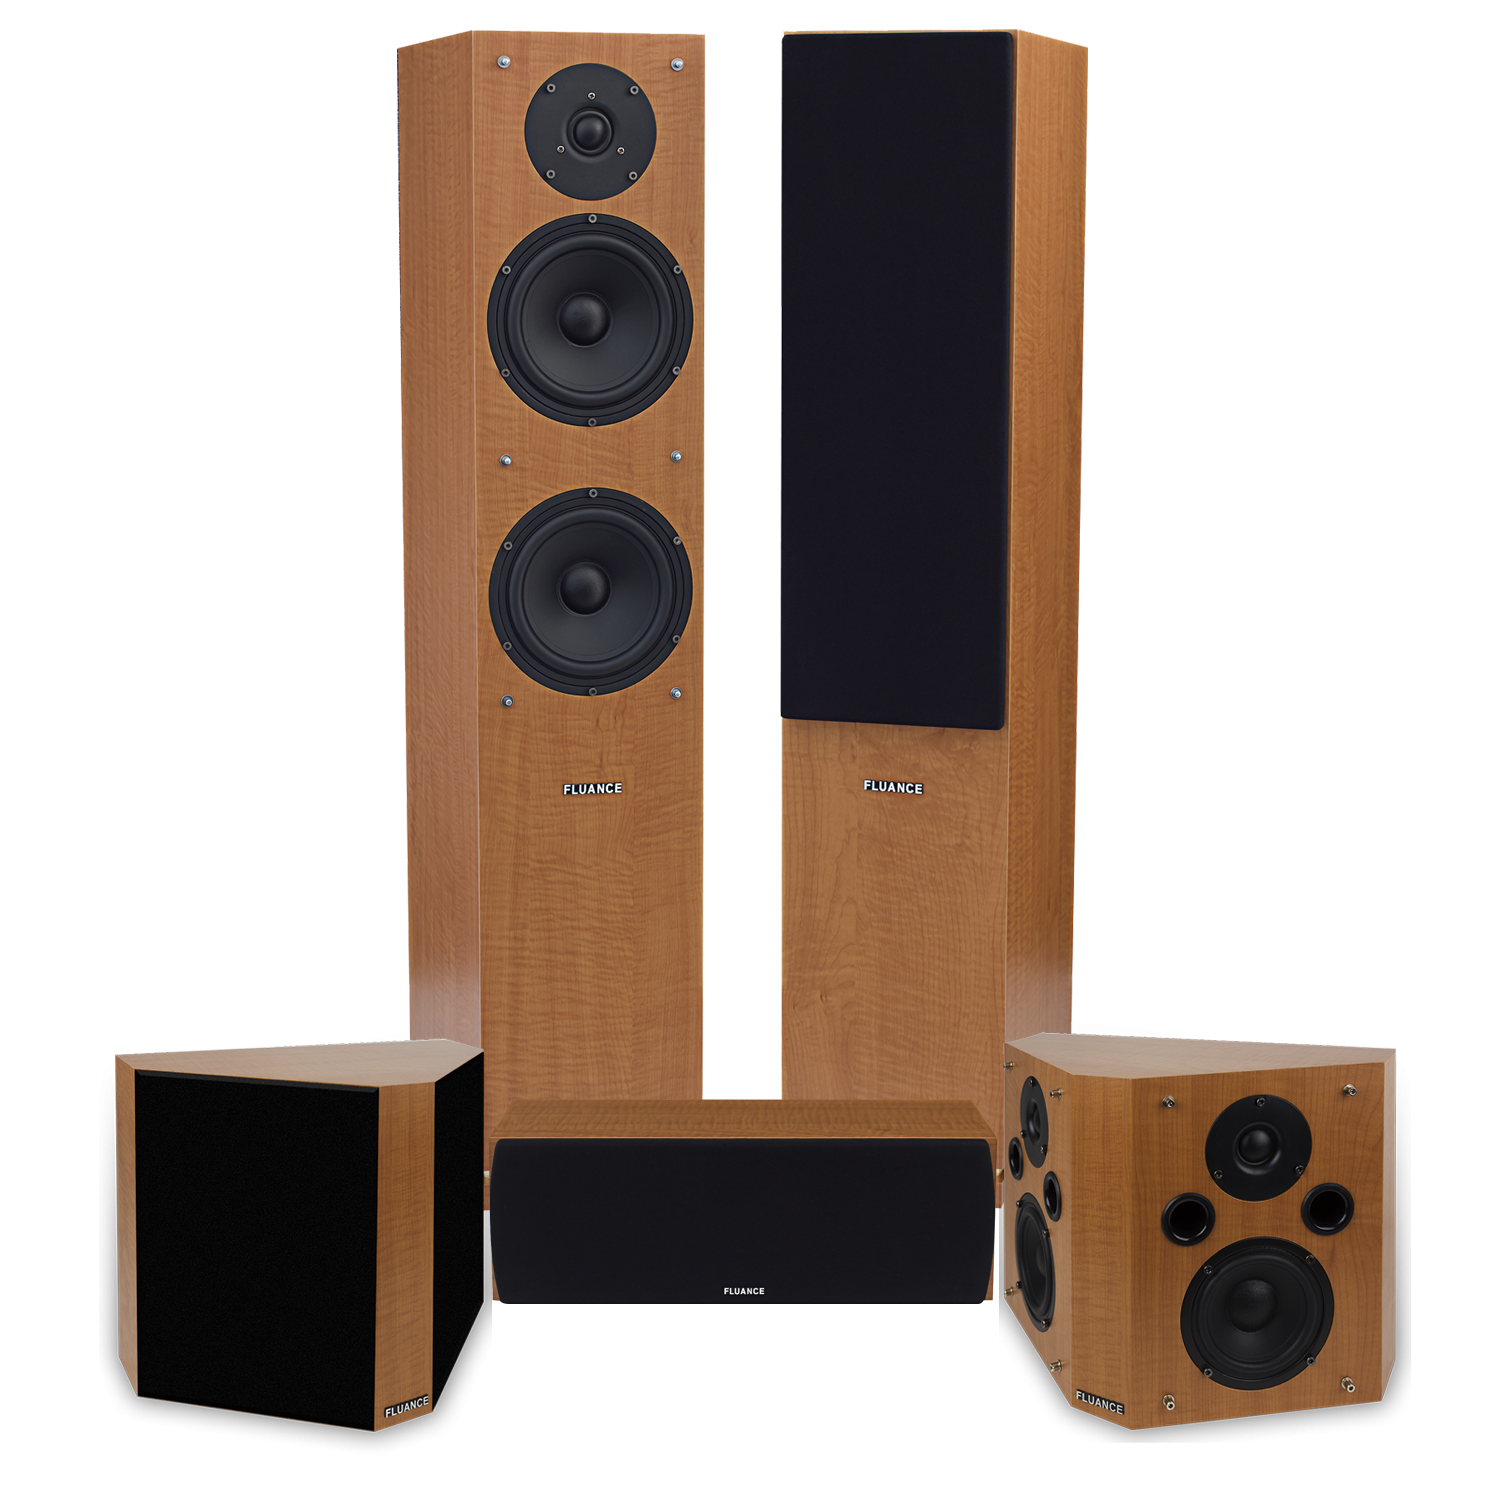 Fluance SXHTBBP-KIT Classic Elite Home Theater System With Bipolar Speakers